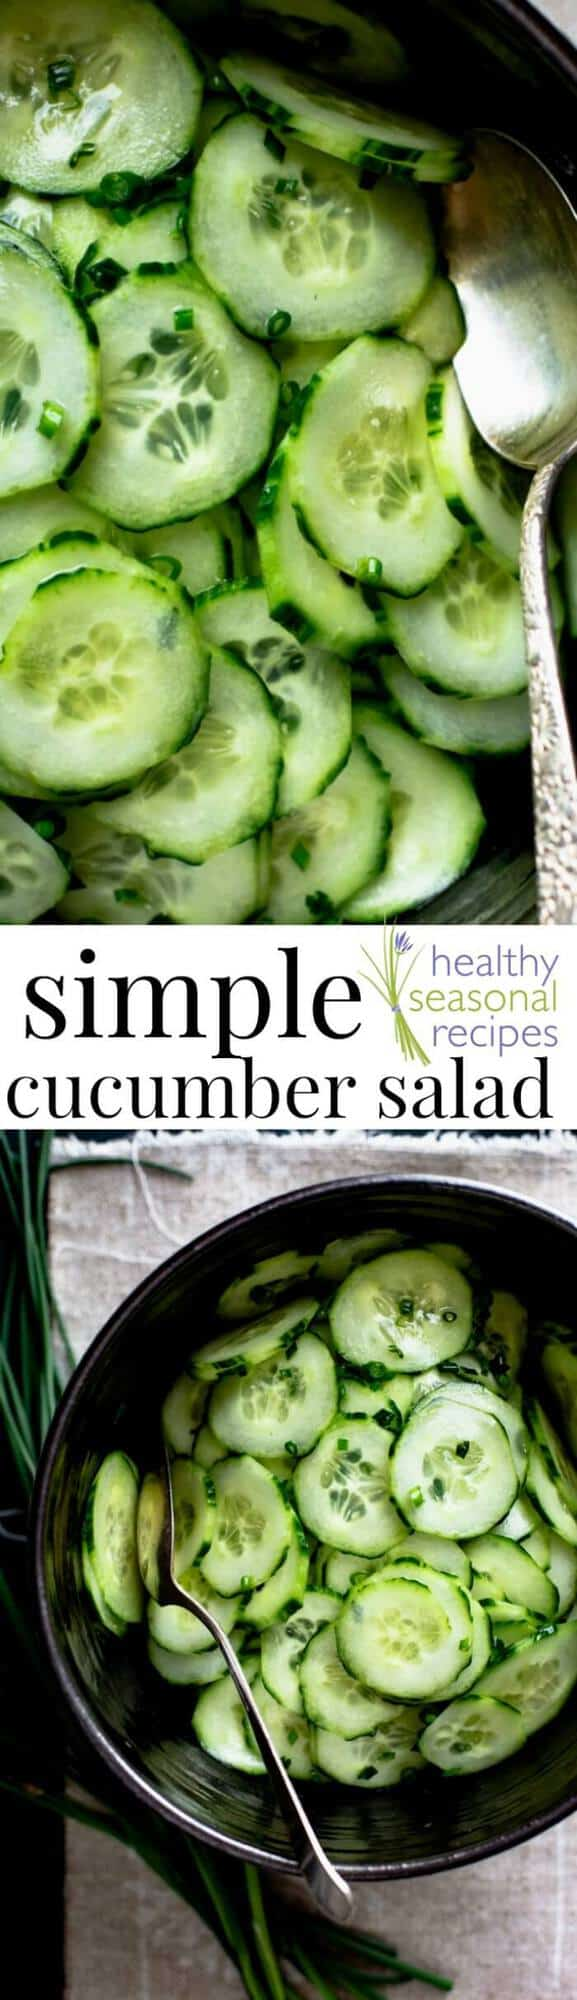 Simple healthy cucumber salad with chives and rice vinegar. Very easy to make and only 19 calories per serving. Fat-free, vegan and gluten-free. #cucumber #salad #vegan #fatfree #vegetarian #glutenfree #lowcalorie #lowcal #sidedish #appetizer #potluck #chives #healthy #skinny